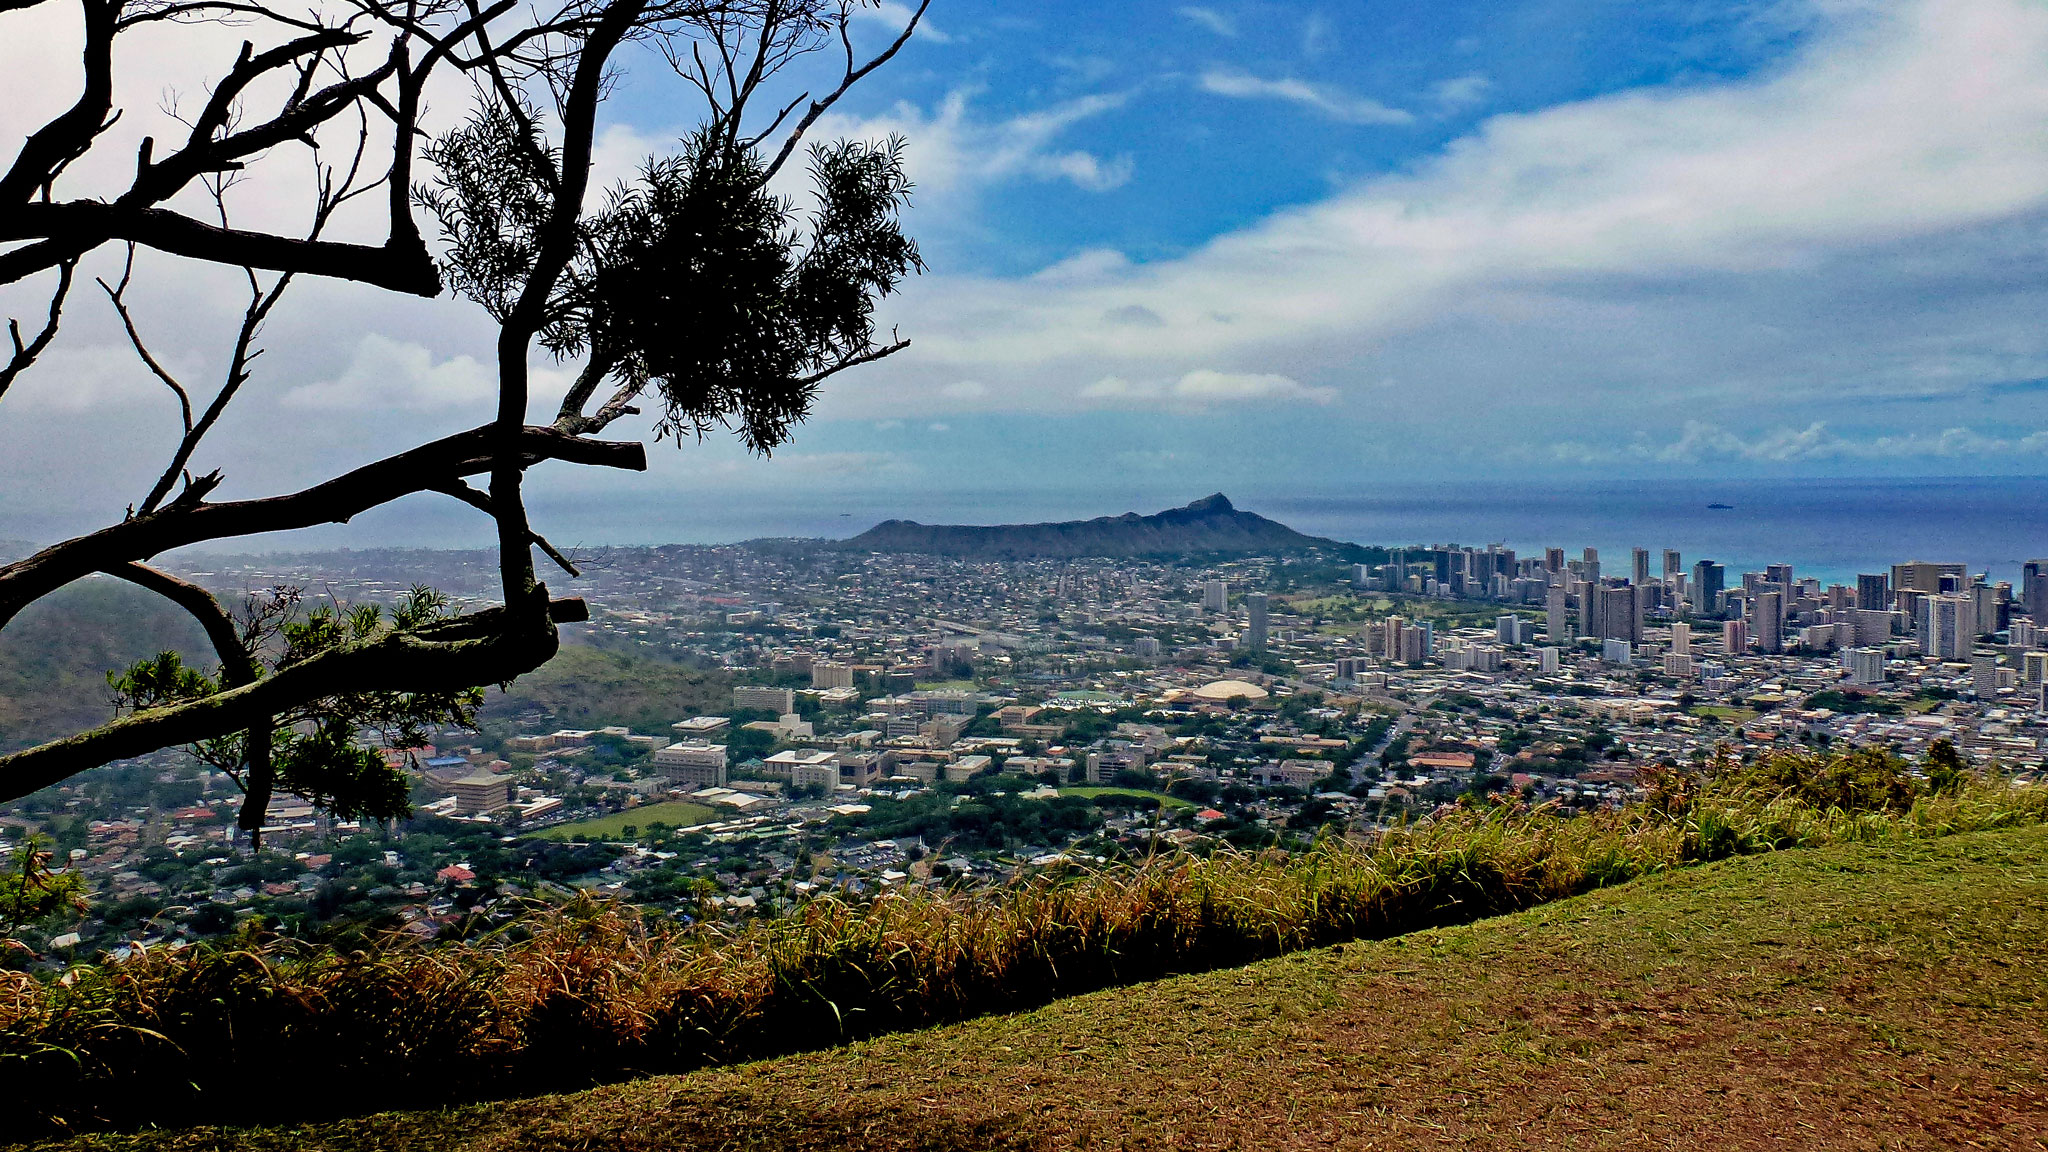 View of Honolulu from Tantalus Lookout in Honolulu.